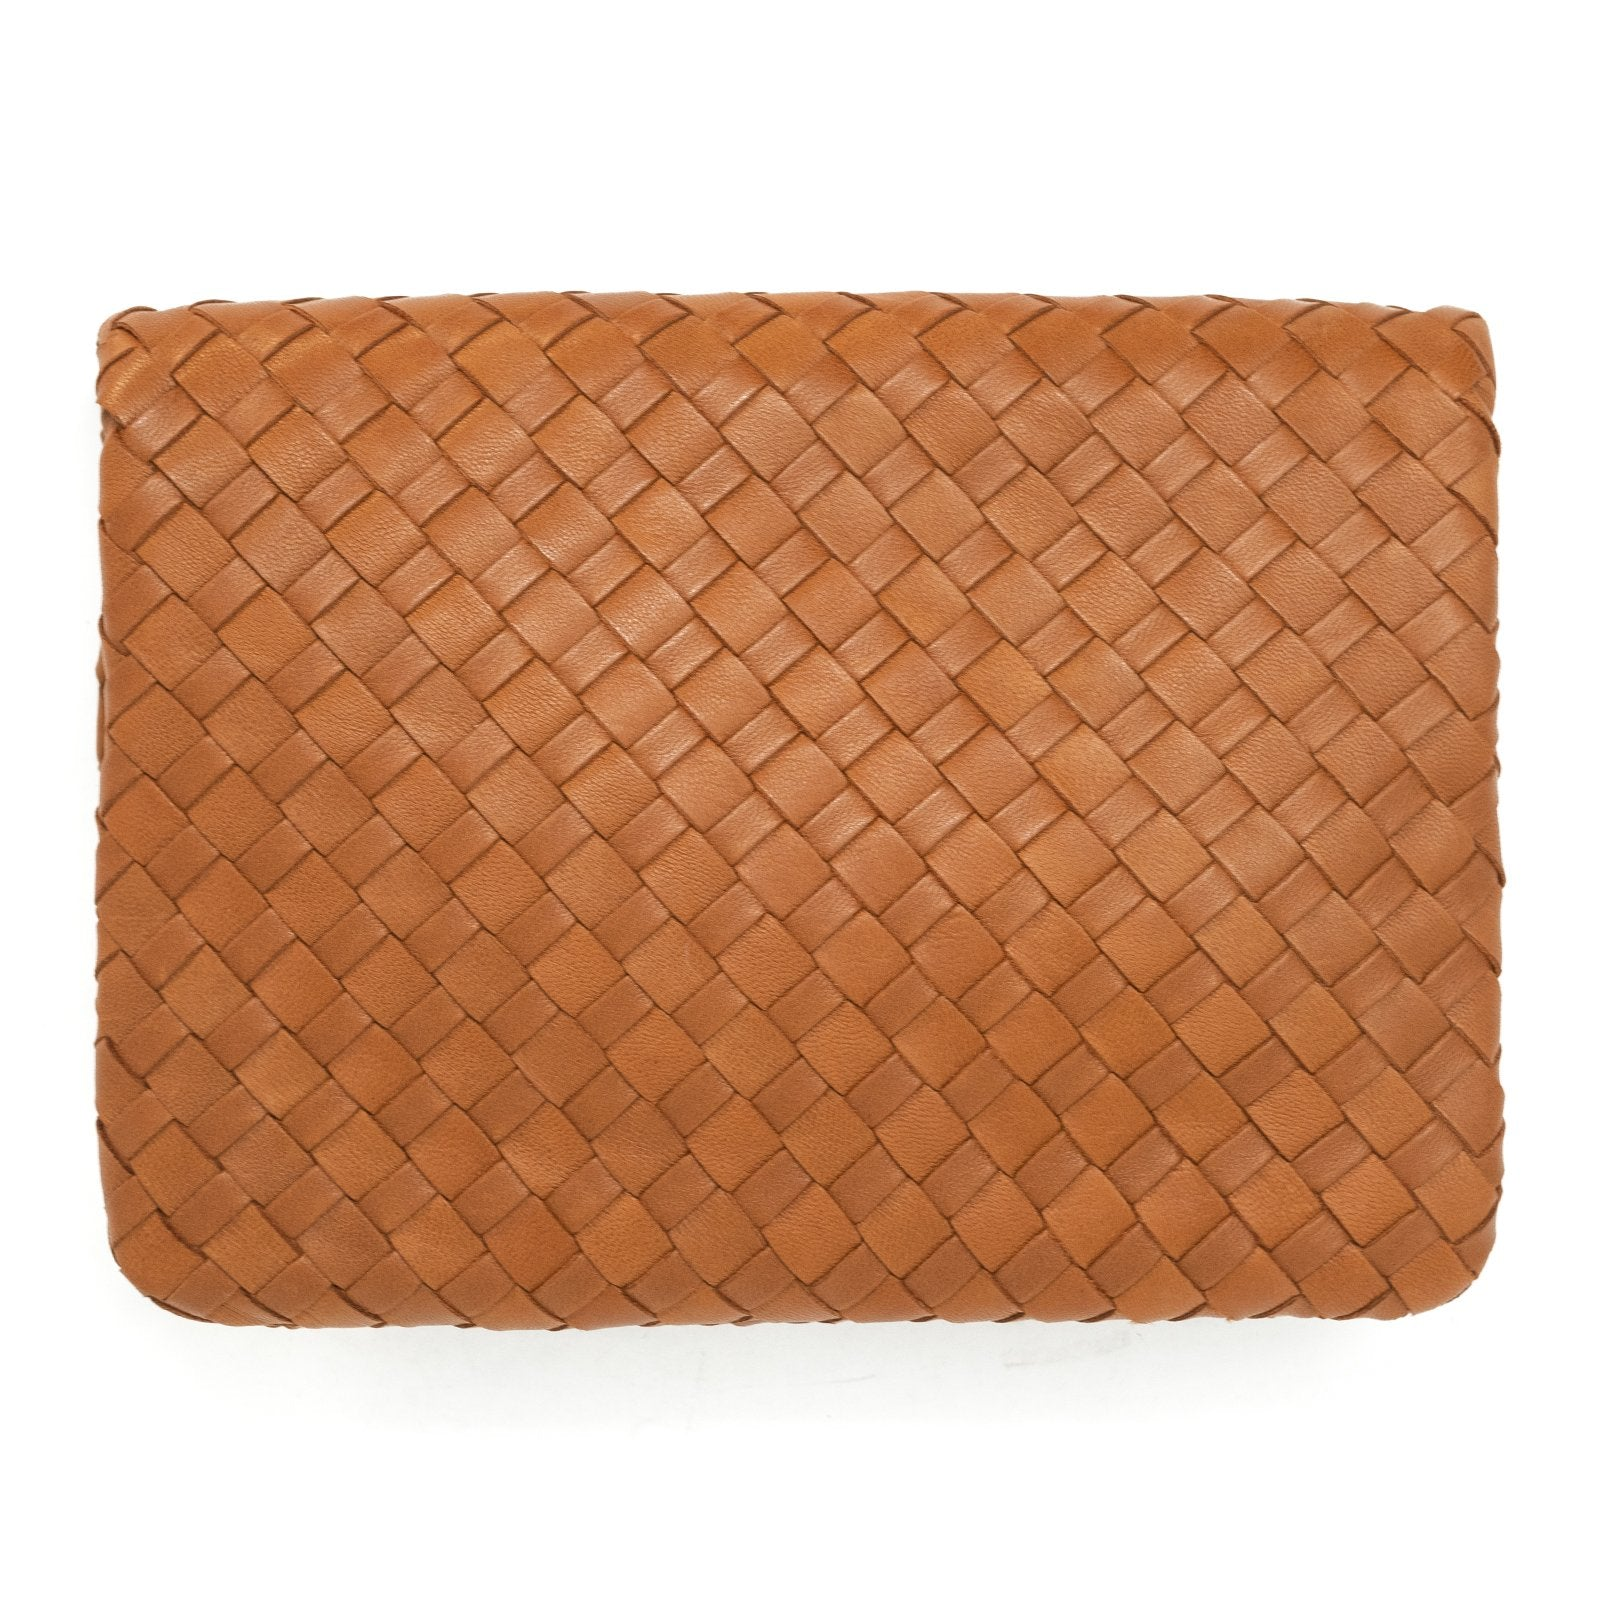 Women Intrecciato Leather Soft Flap Pouch Cuoio Intreccio Quadro - Jennifer Tattanelli